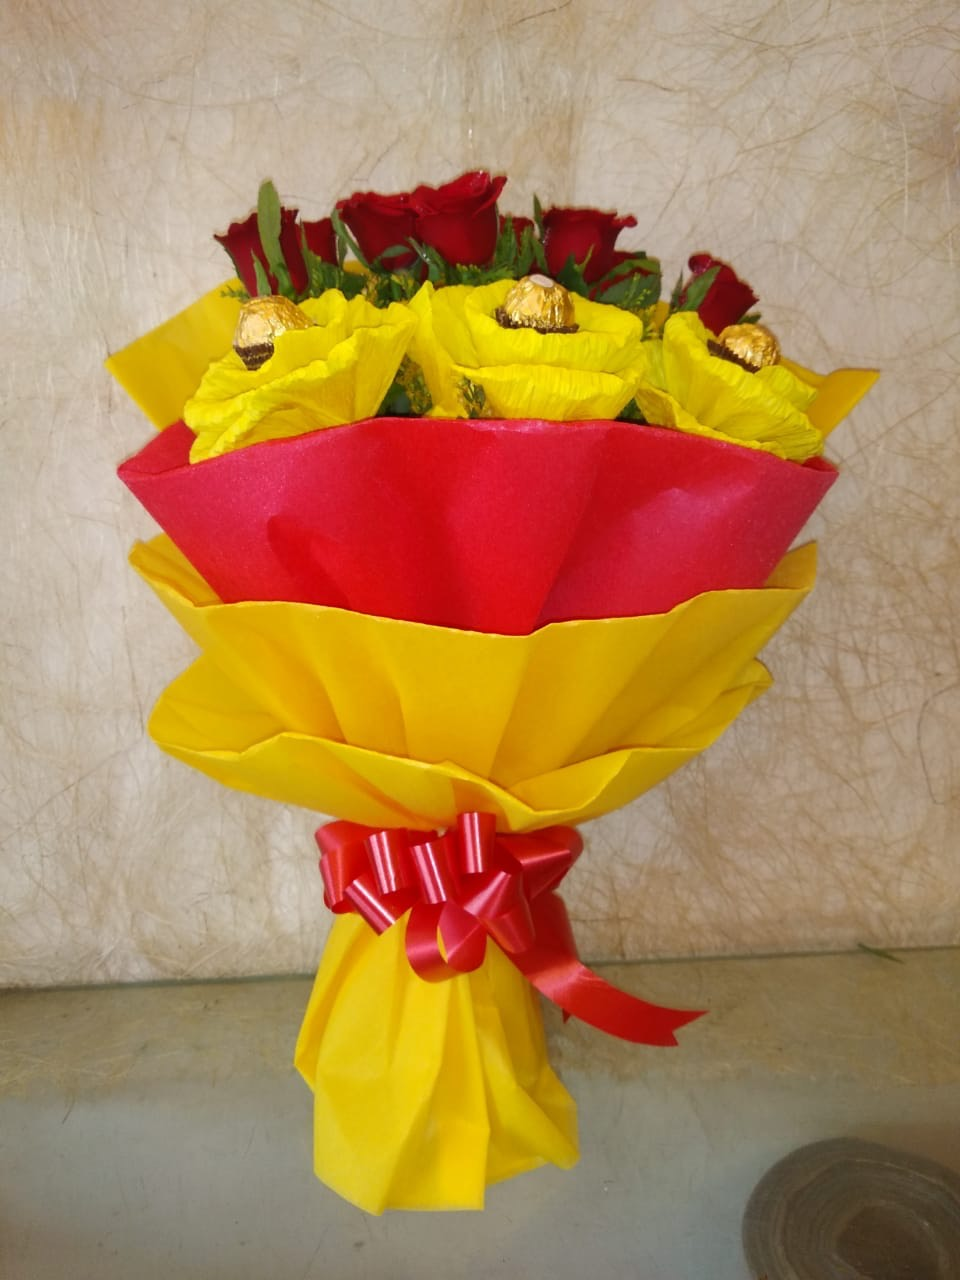 send flower Hazrat Nizamuddin DelhiRed Roses Ferrero Rocher Bunch